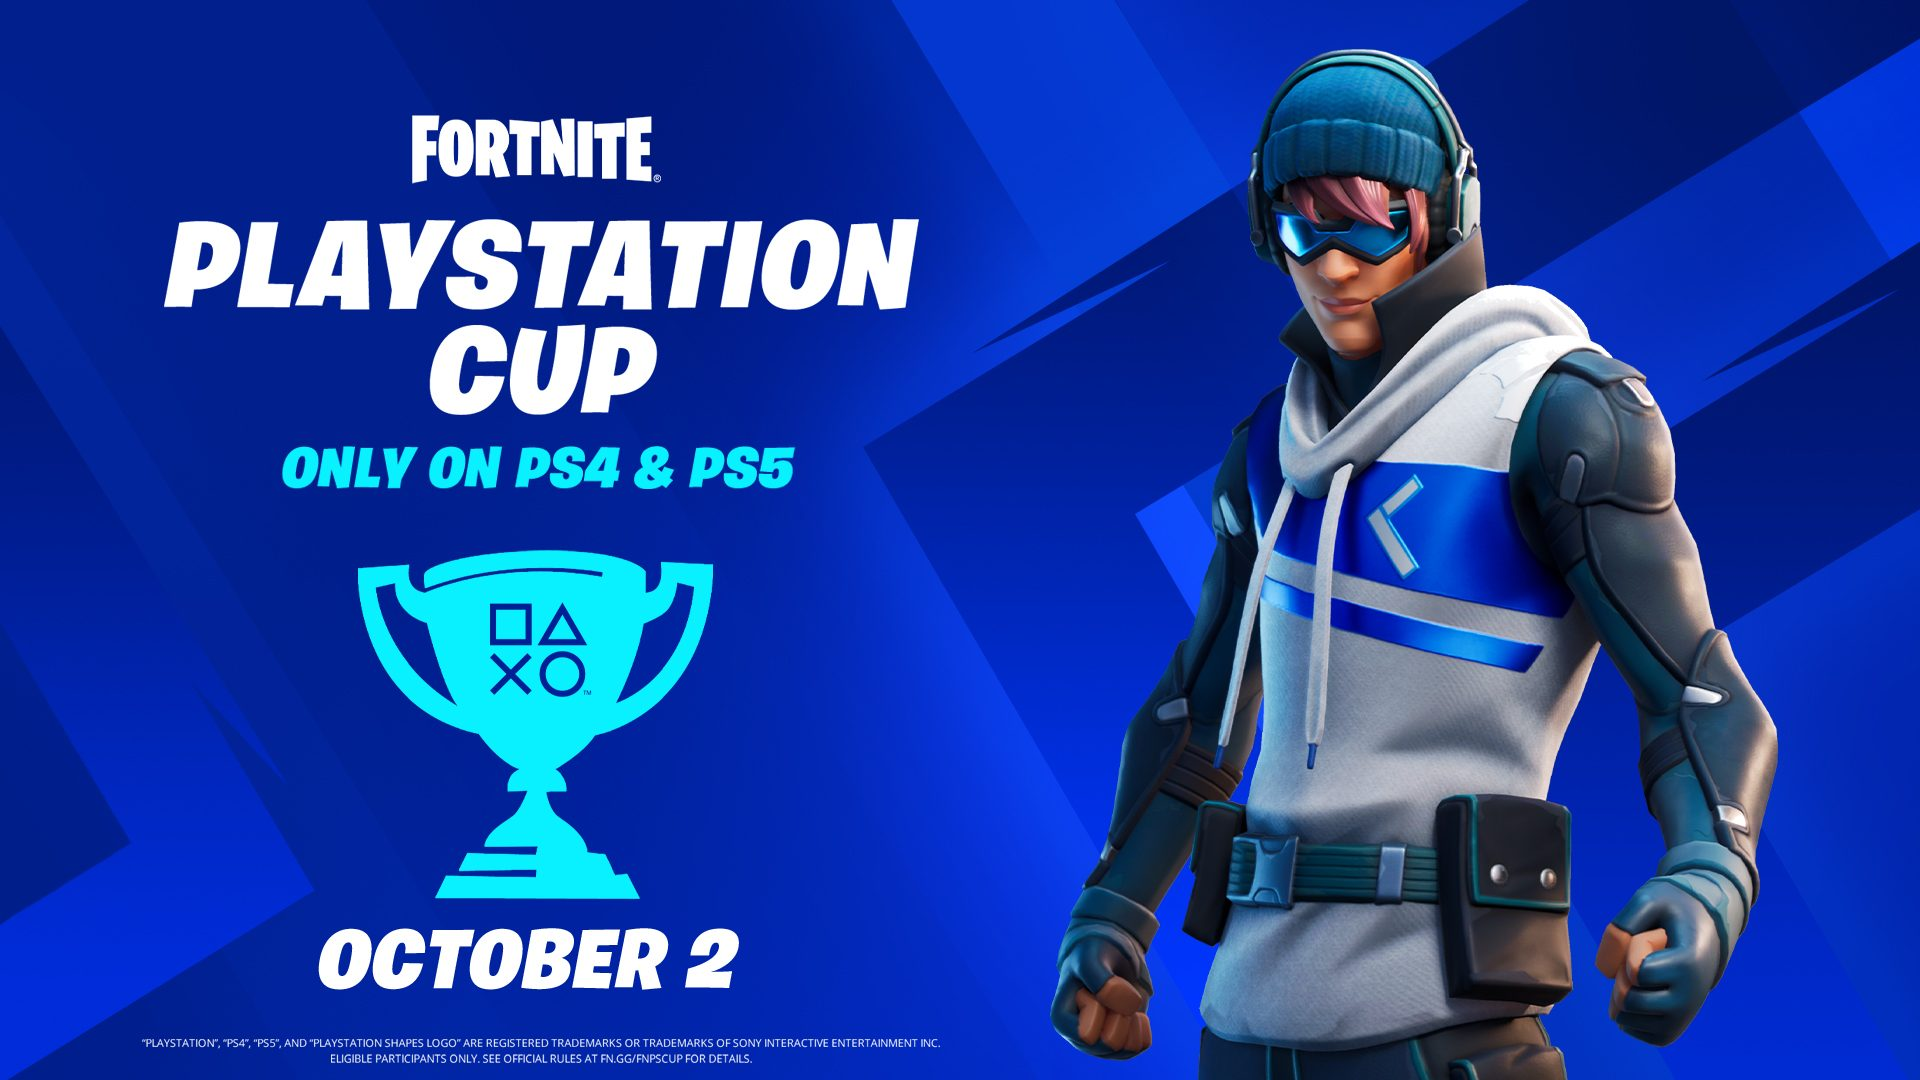 contend-in-the-fortnite-playstation-cup-for-a-piece-of-the-$110,000-worldwide-prize-pool